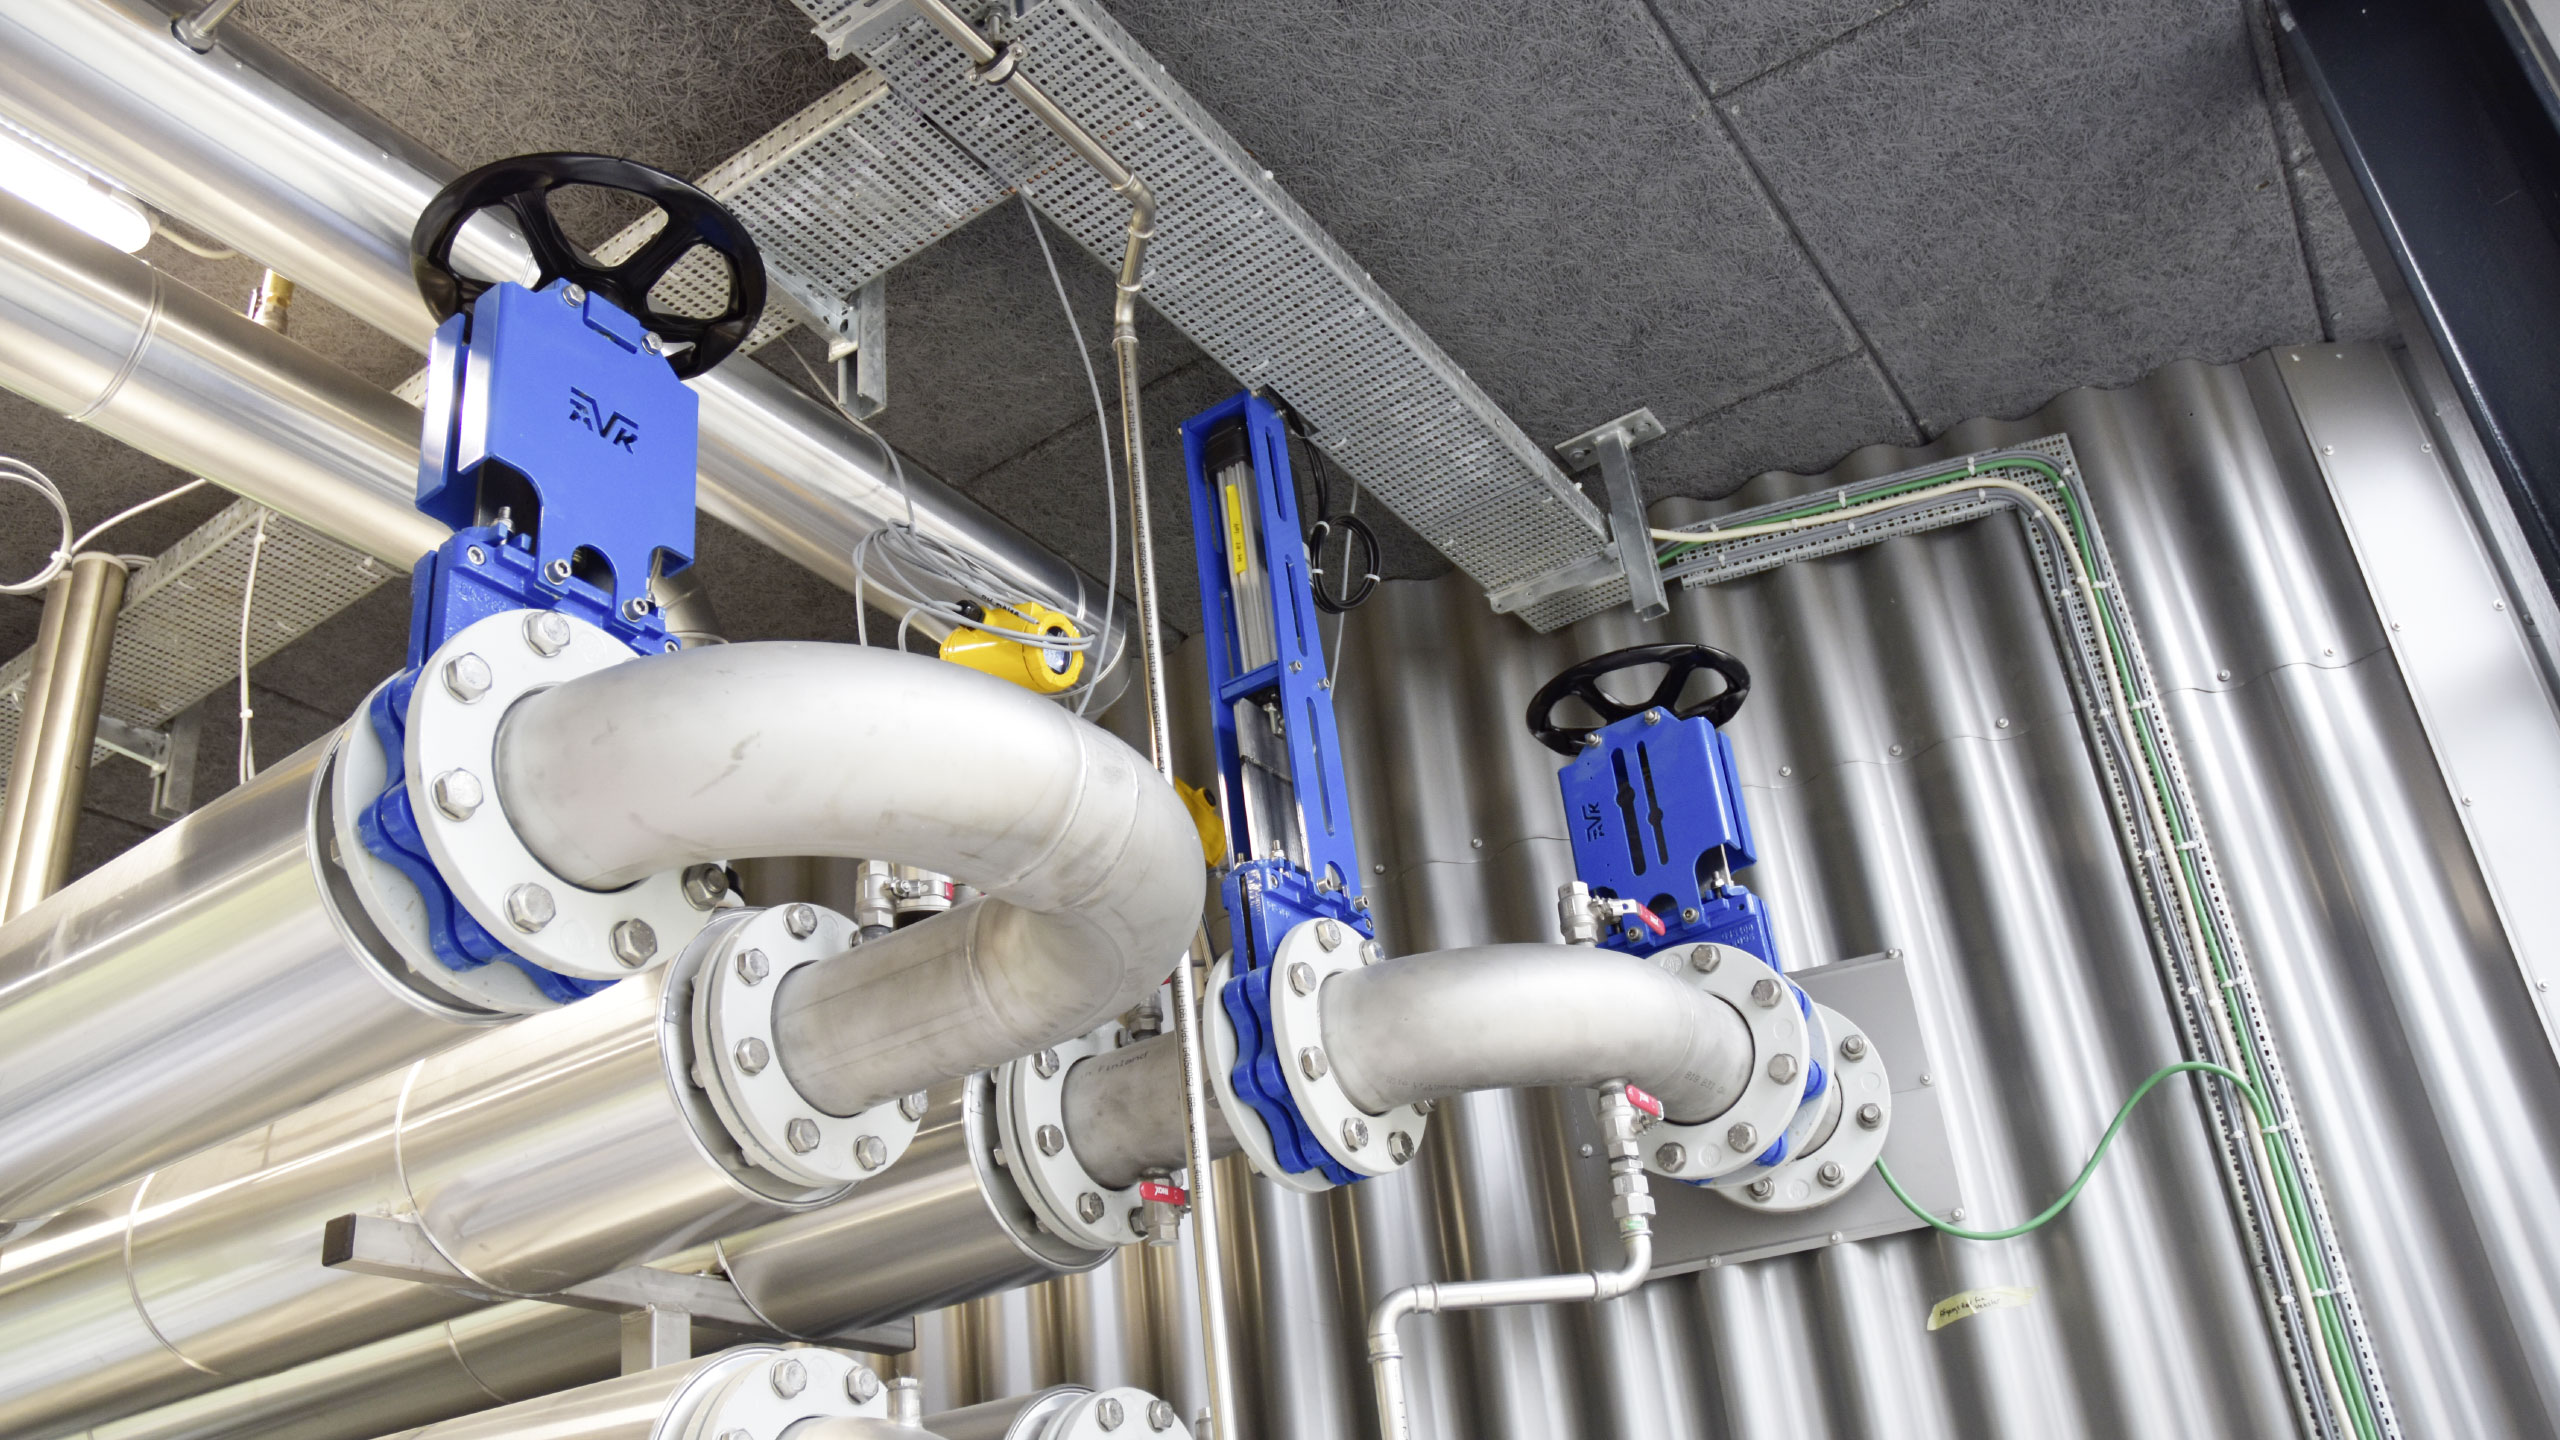 Knife gate valves installed indoor at the Egaa wastewater treatment plant in Denmark